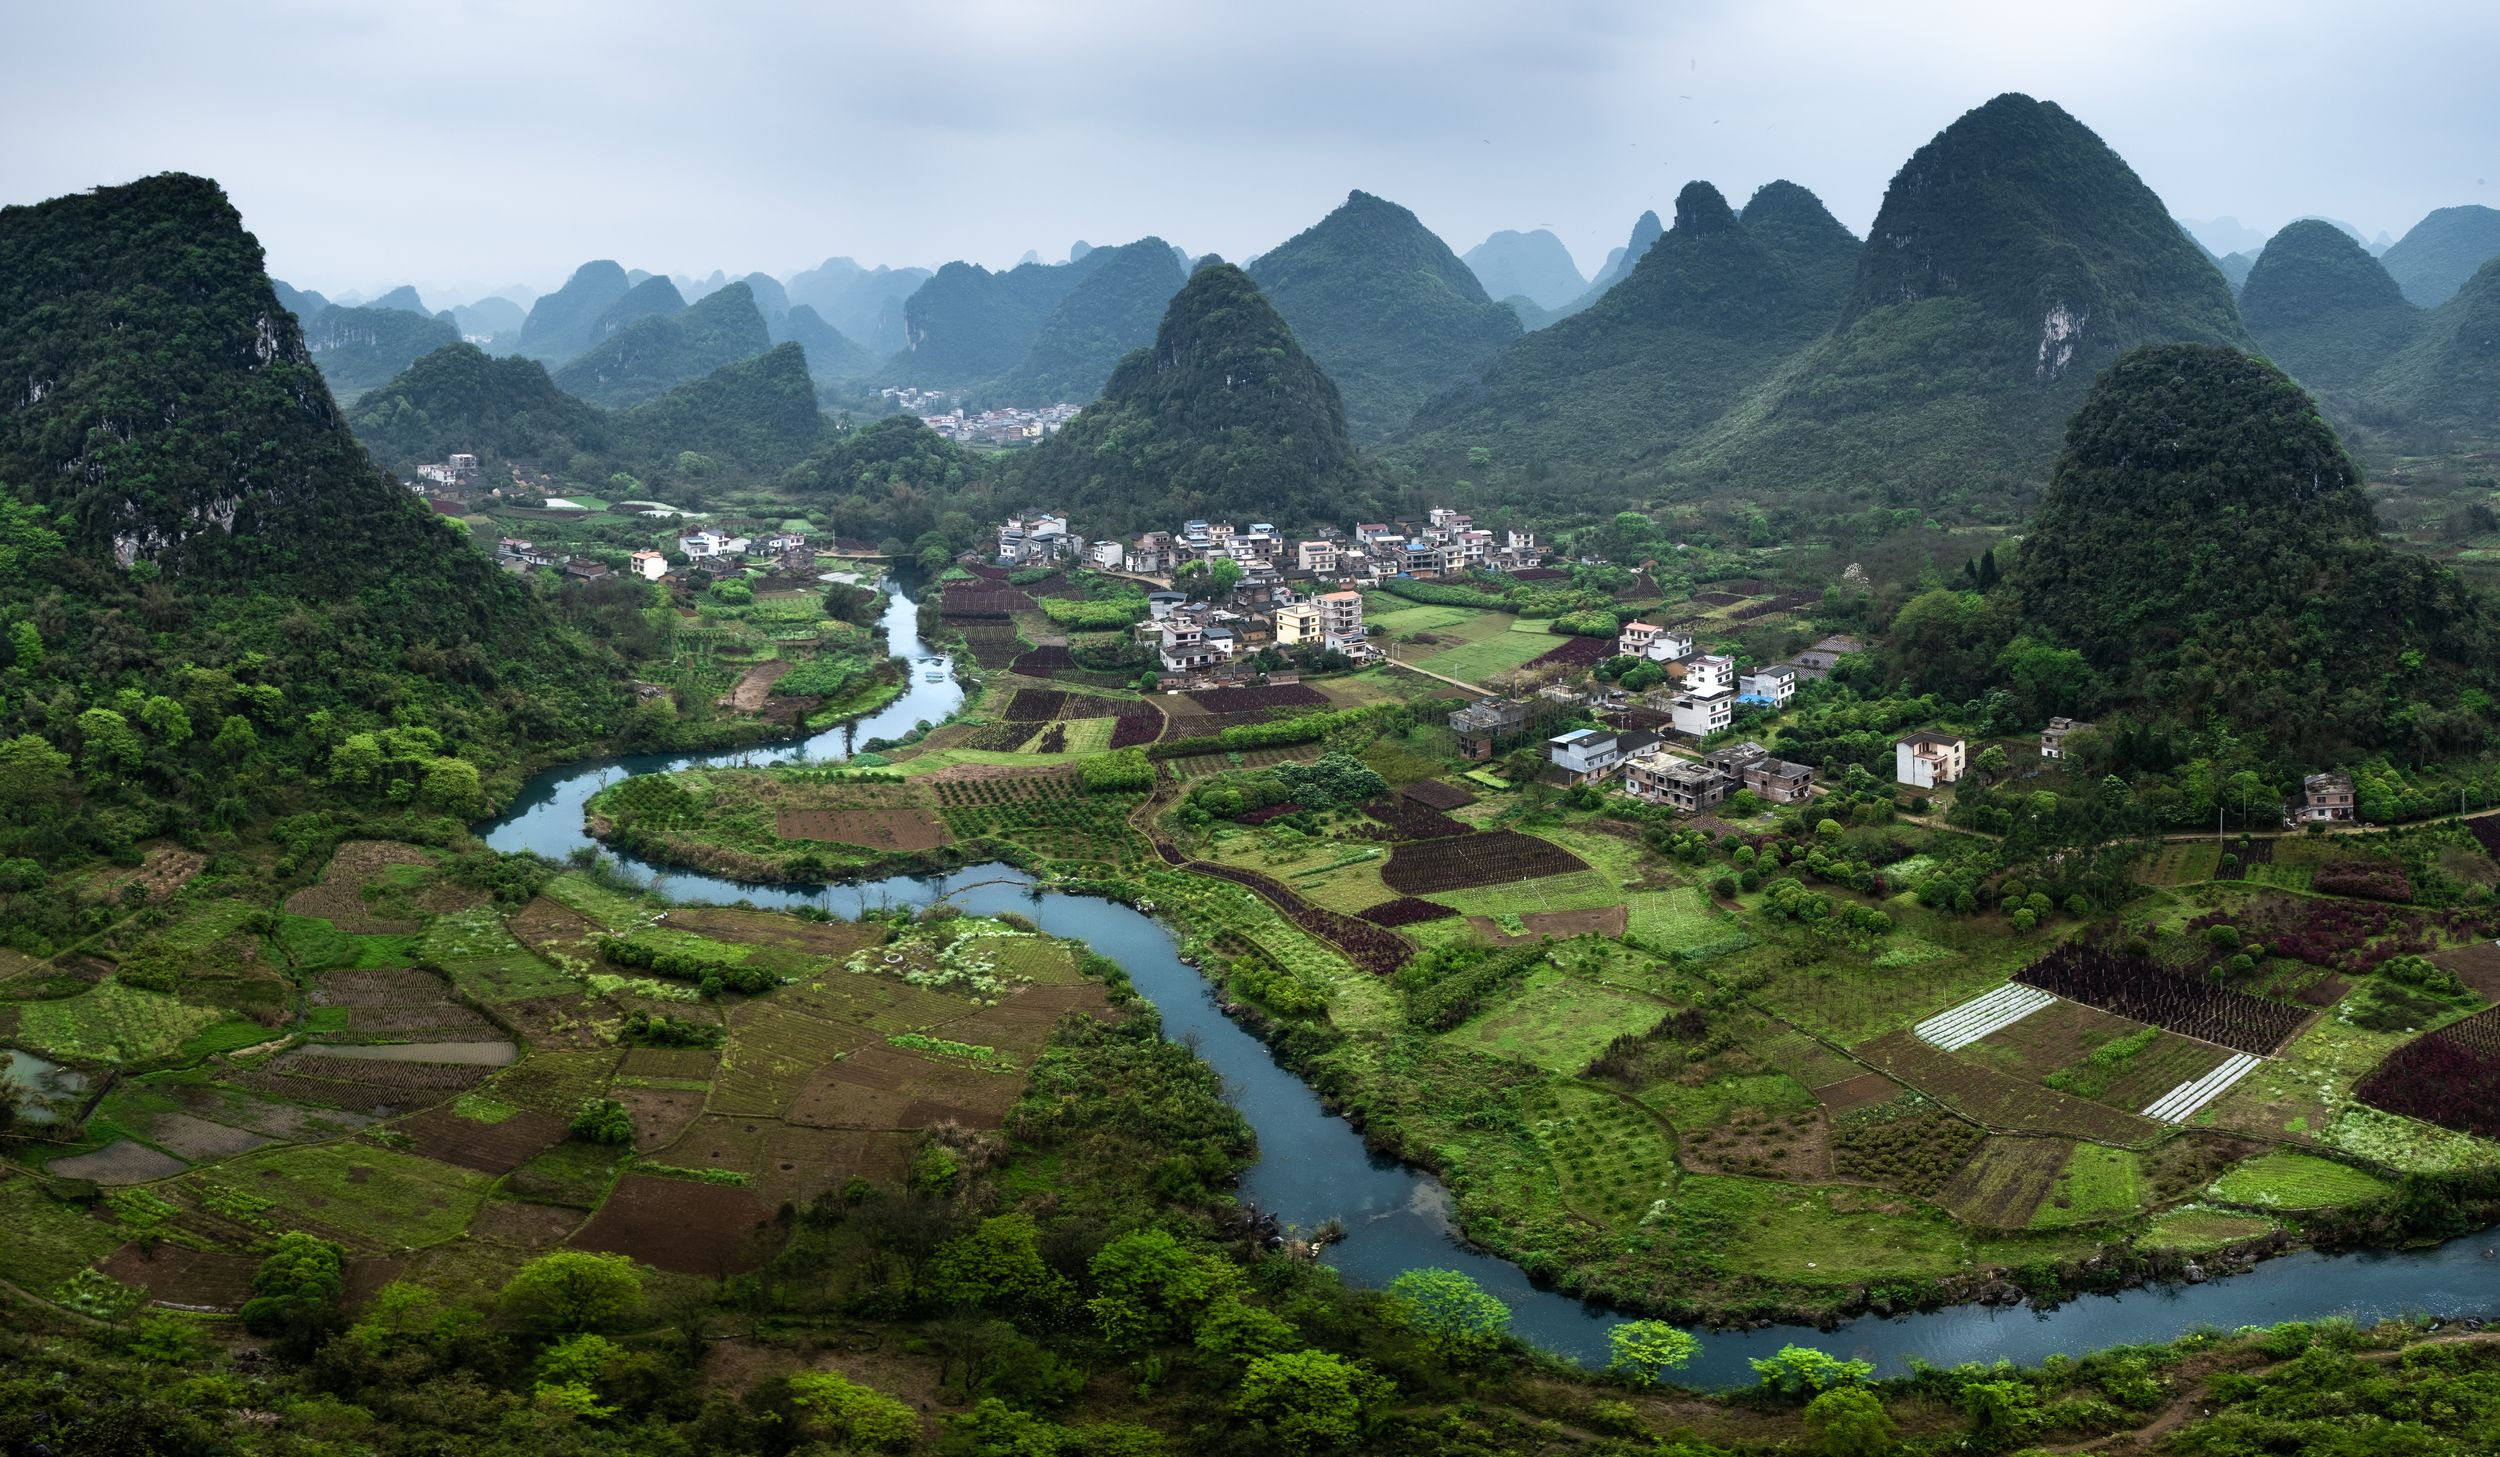 Cuiping Hill, Xiannggong mountain, Cormorant fisherman, Guilin, Yangshuo, Xingping, Avatar, Zhangjiajie, Travel in China, China travel, China trips, Photo Tour in China, China photo tours